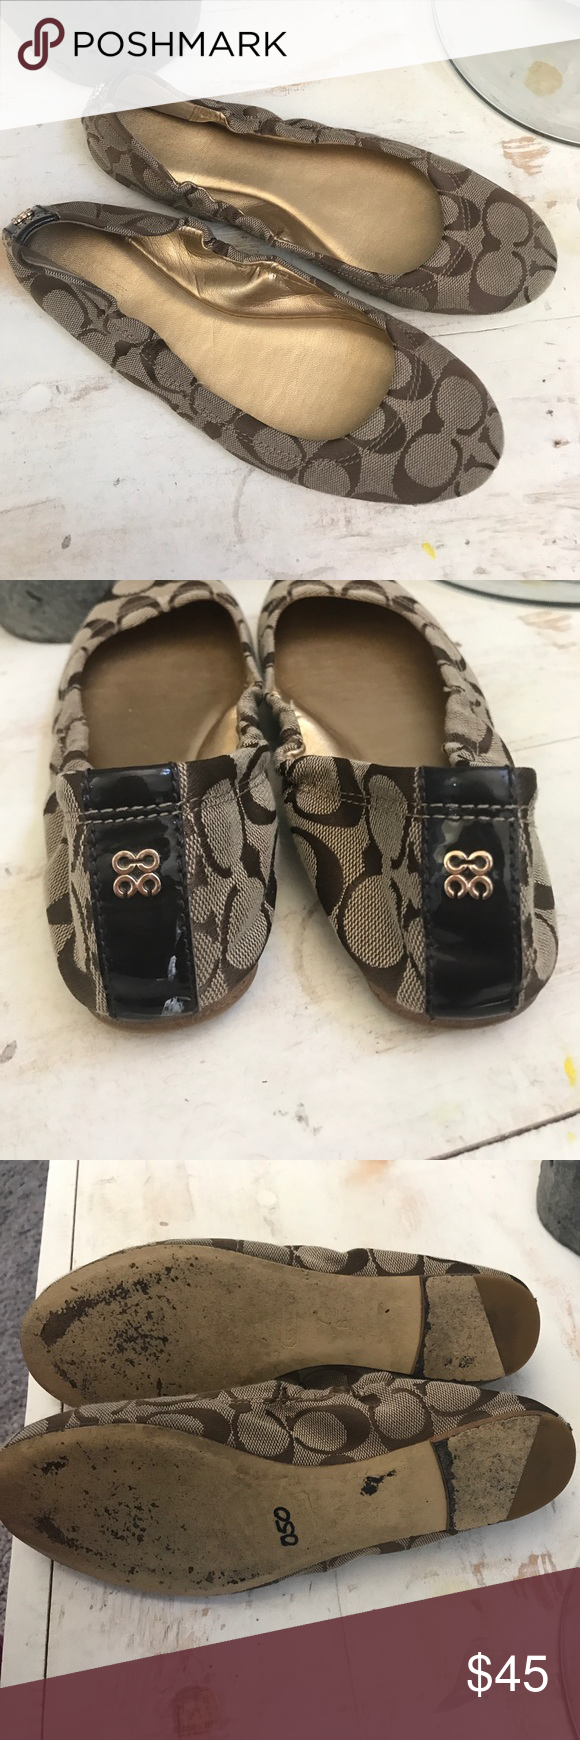 Coach size 7 flats ✨EUC coach flats size 7 I'm usually a size 6 but I tend to go a size bigger in sandals and flats so please know your size small white scuff on back as pictured above ✨ Coach Shoes Flats & Loafers